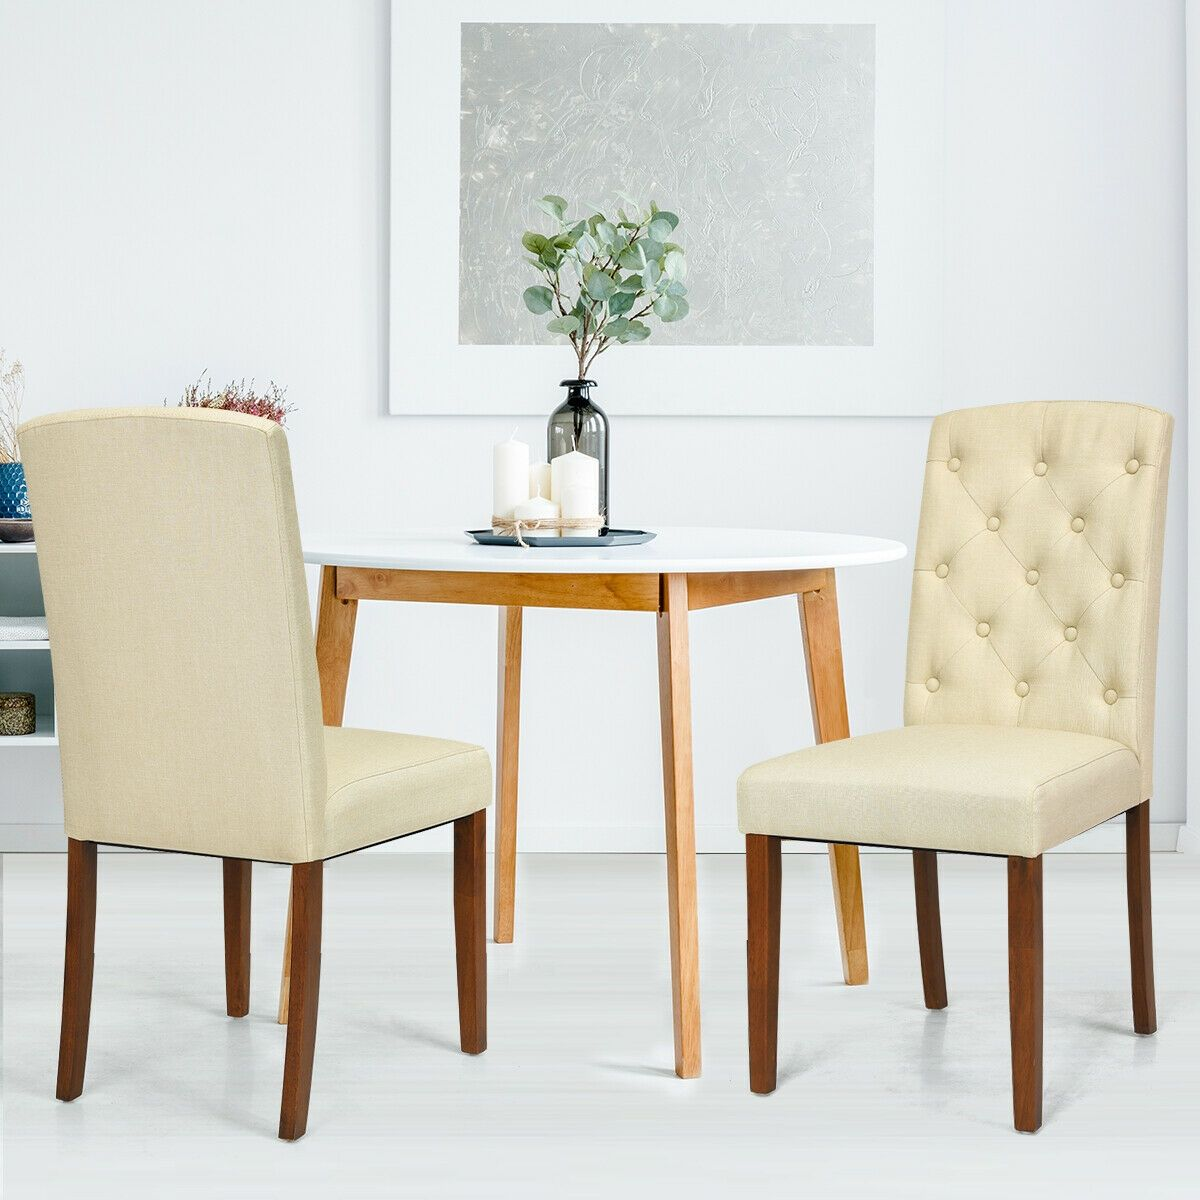 Set Of 2 Fabric Wood Accent Dining Chair Tufted Modern Living Room